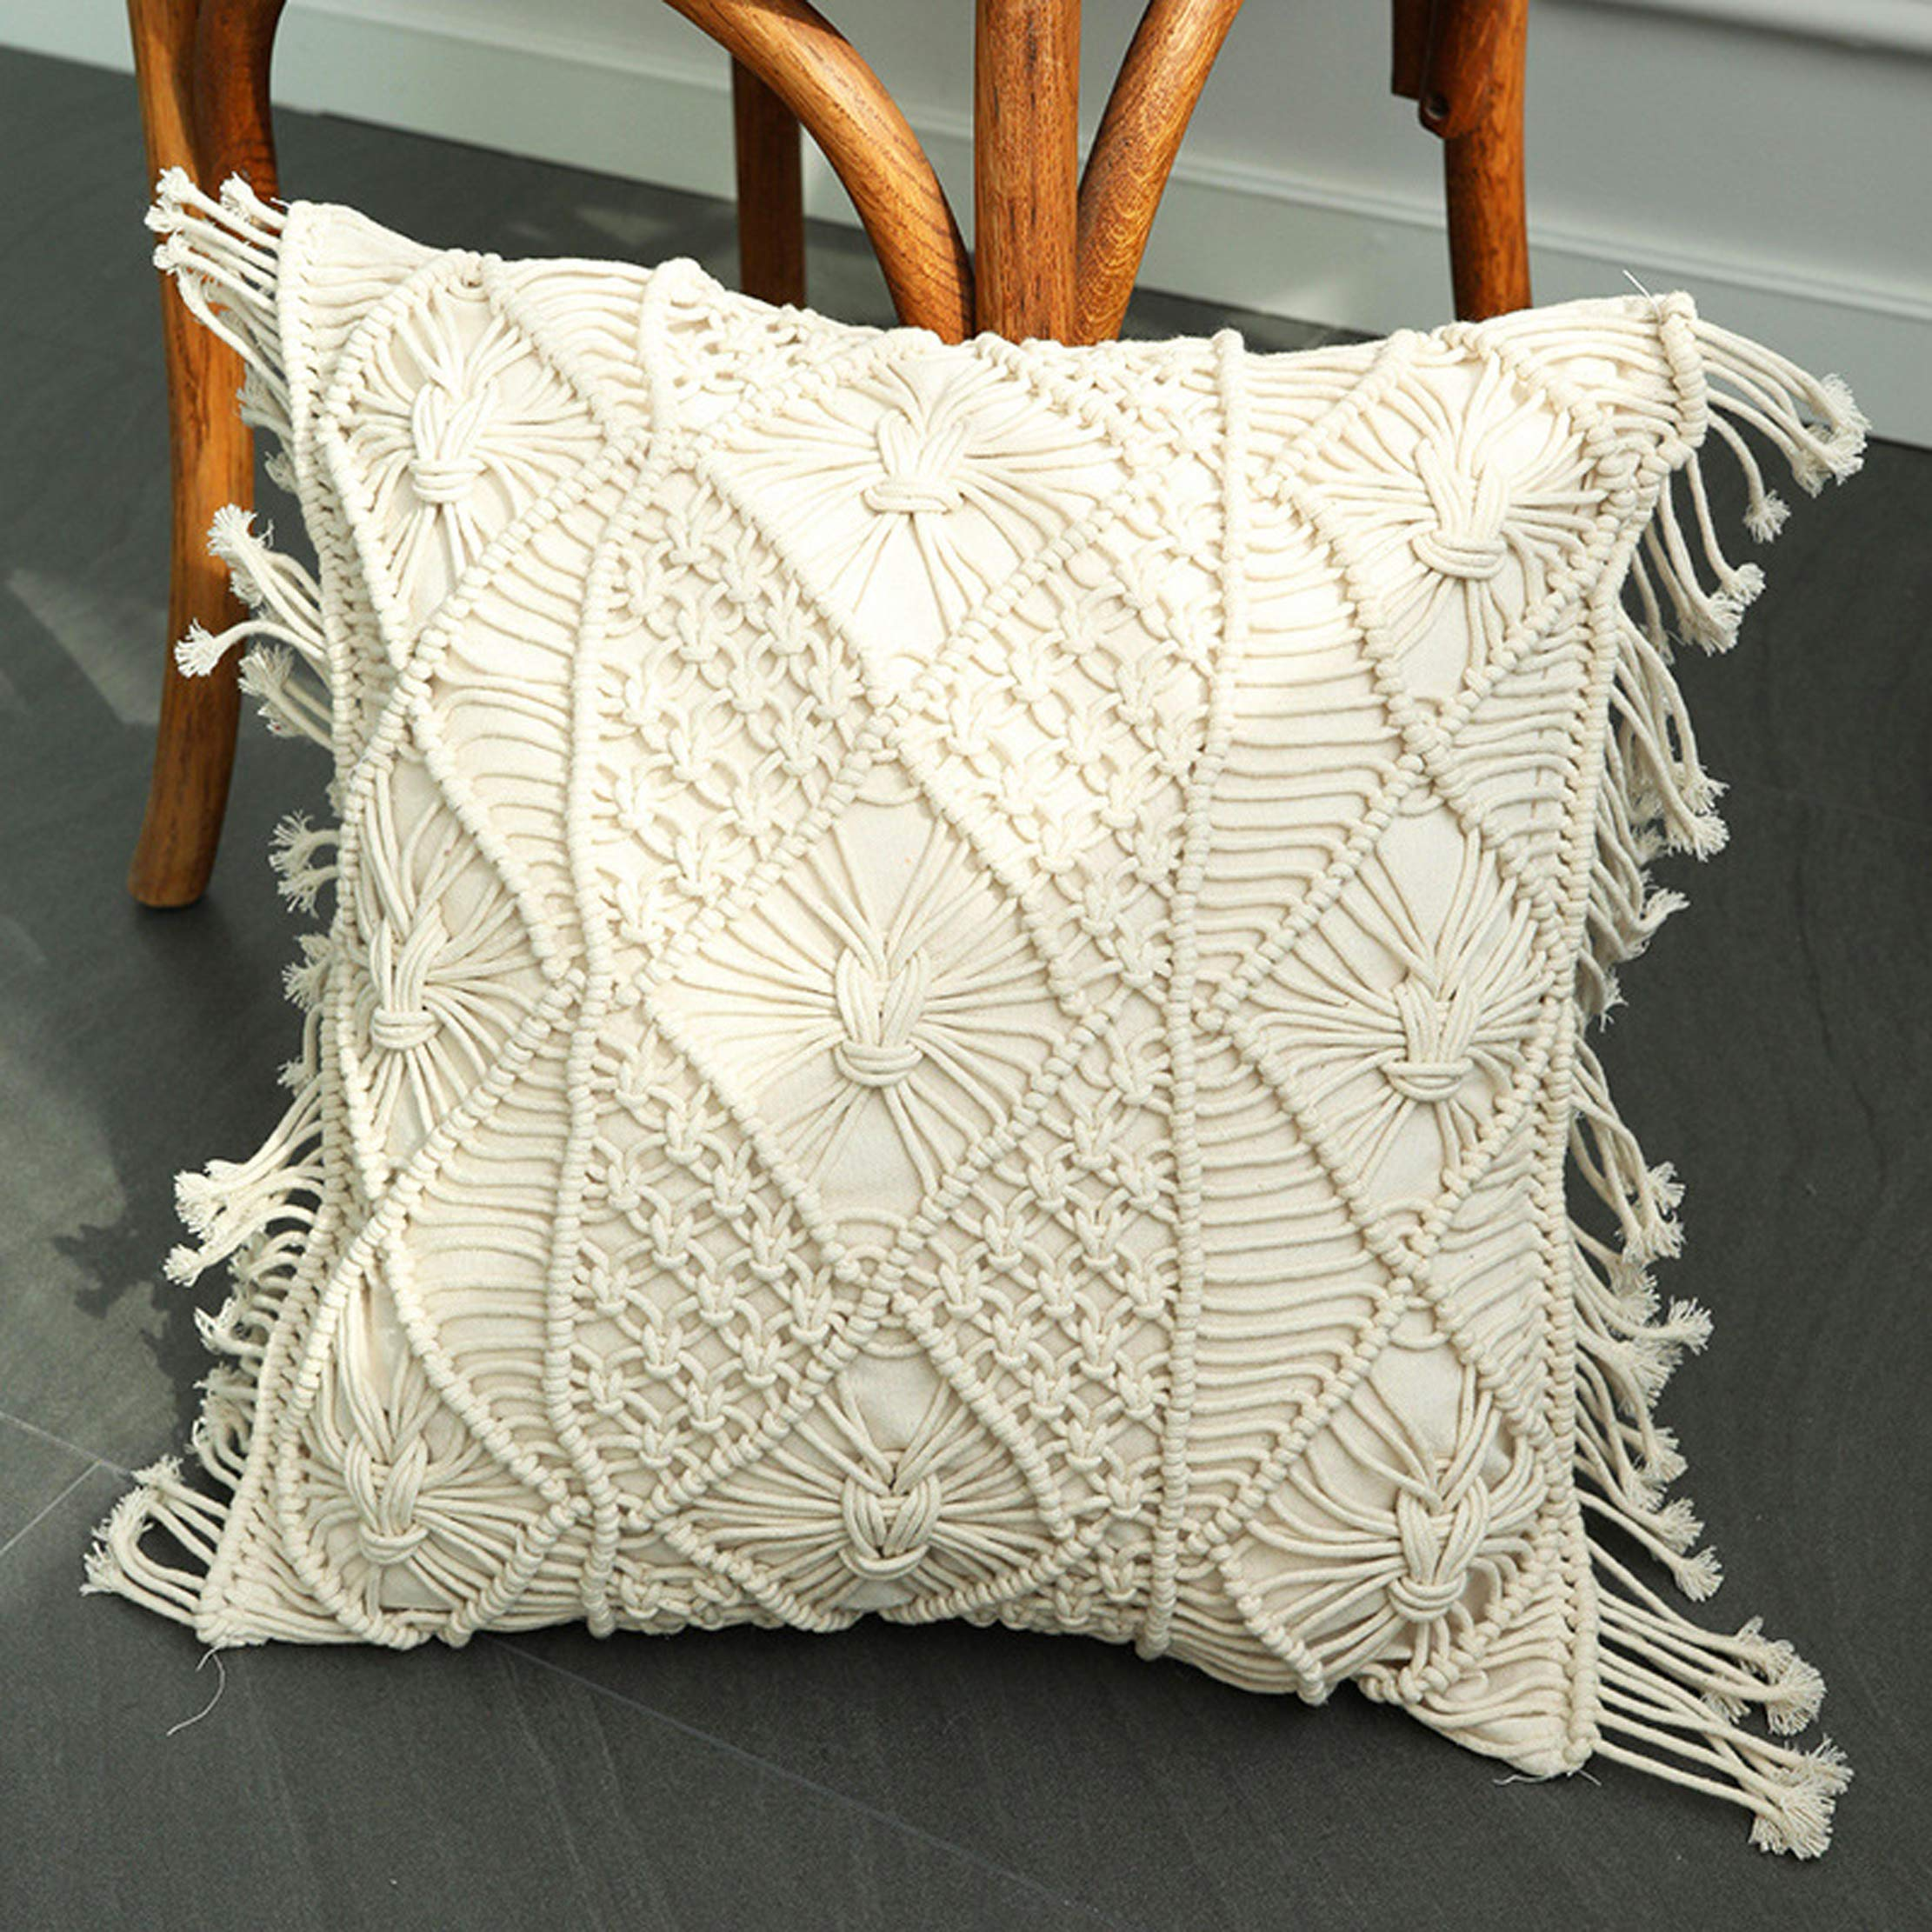 CDM product famibay Handmade Woven Pillow Cover Square Macrame Cushion Cover Boho Decorative Cable Rope Tassels Accent Pillow Case Home Sofa Bed Living Room Chair 18 x 18 Inch Natural White big image